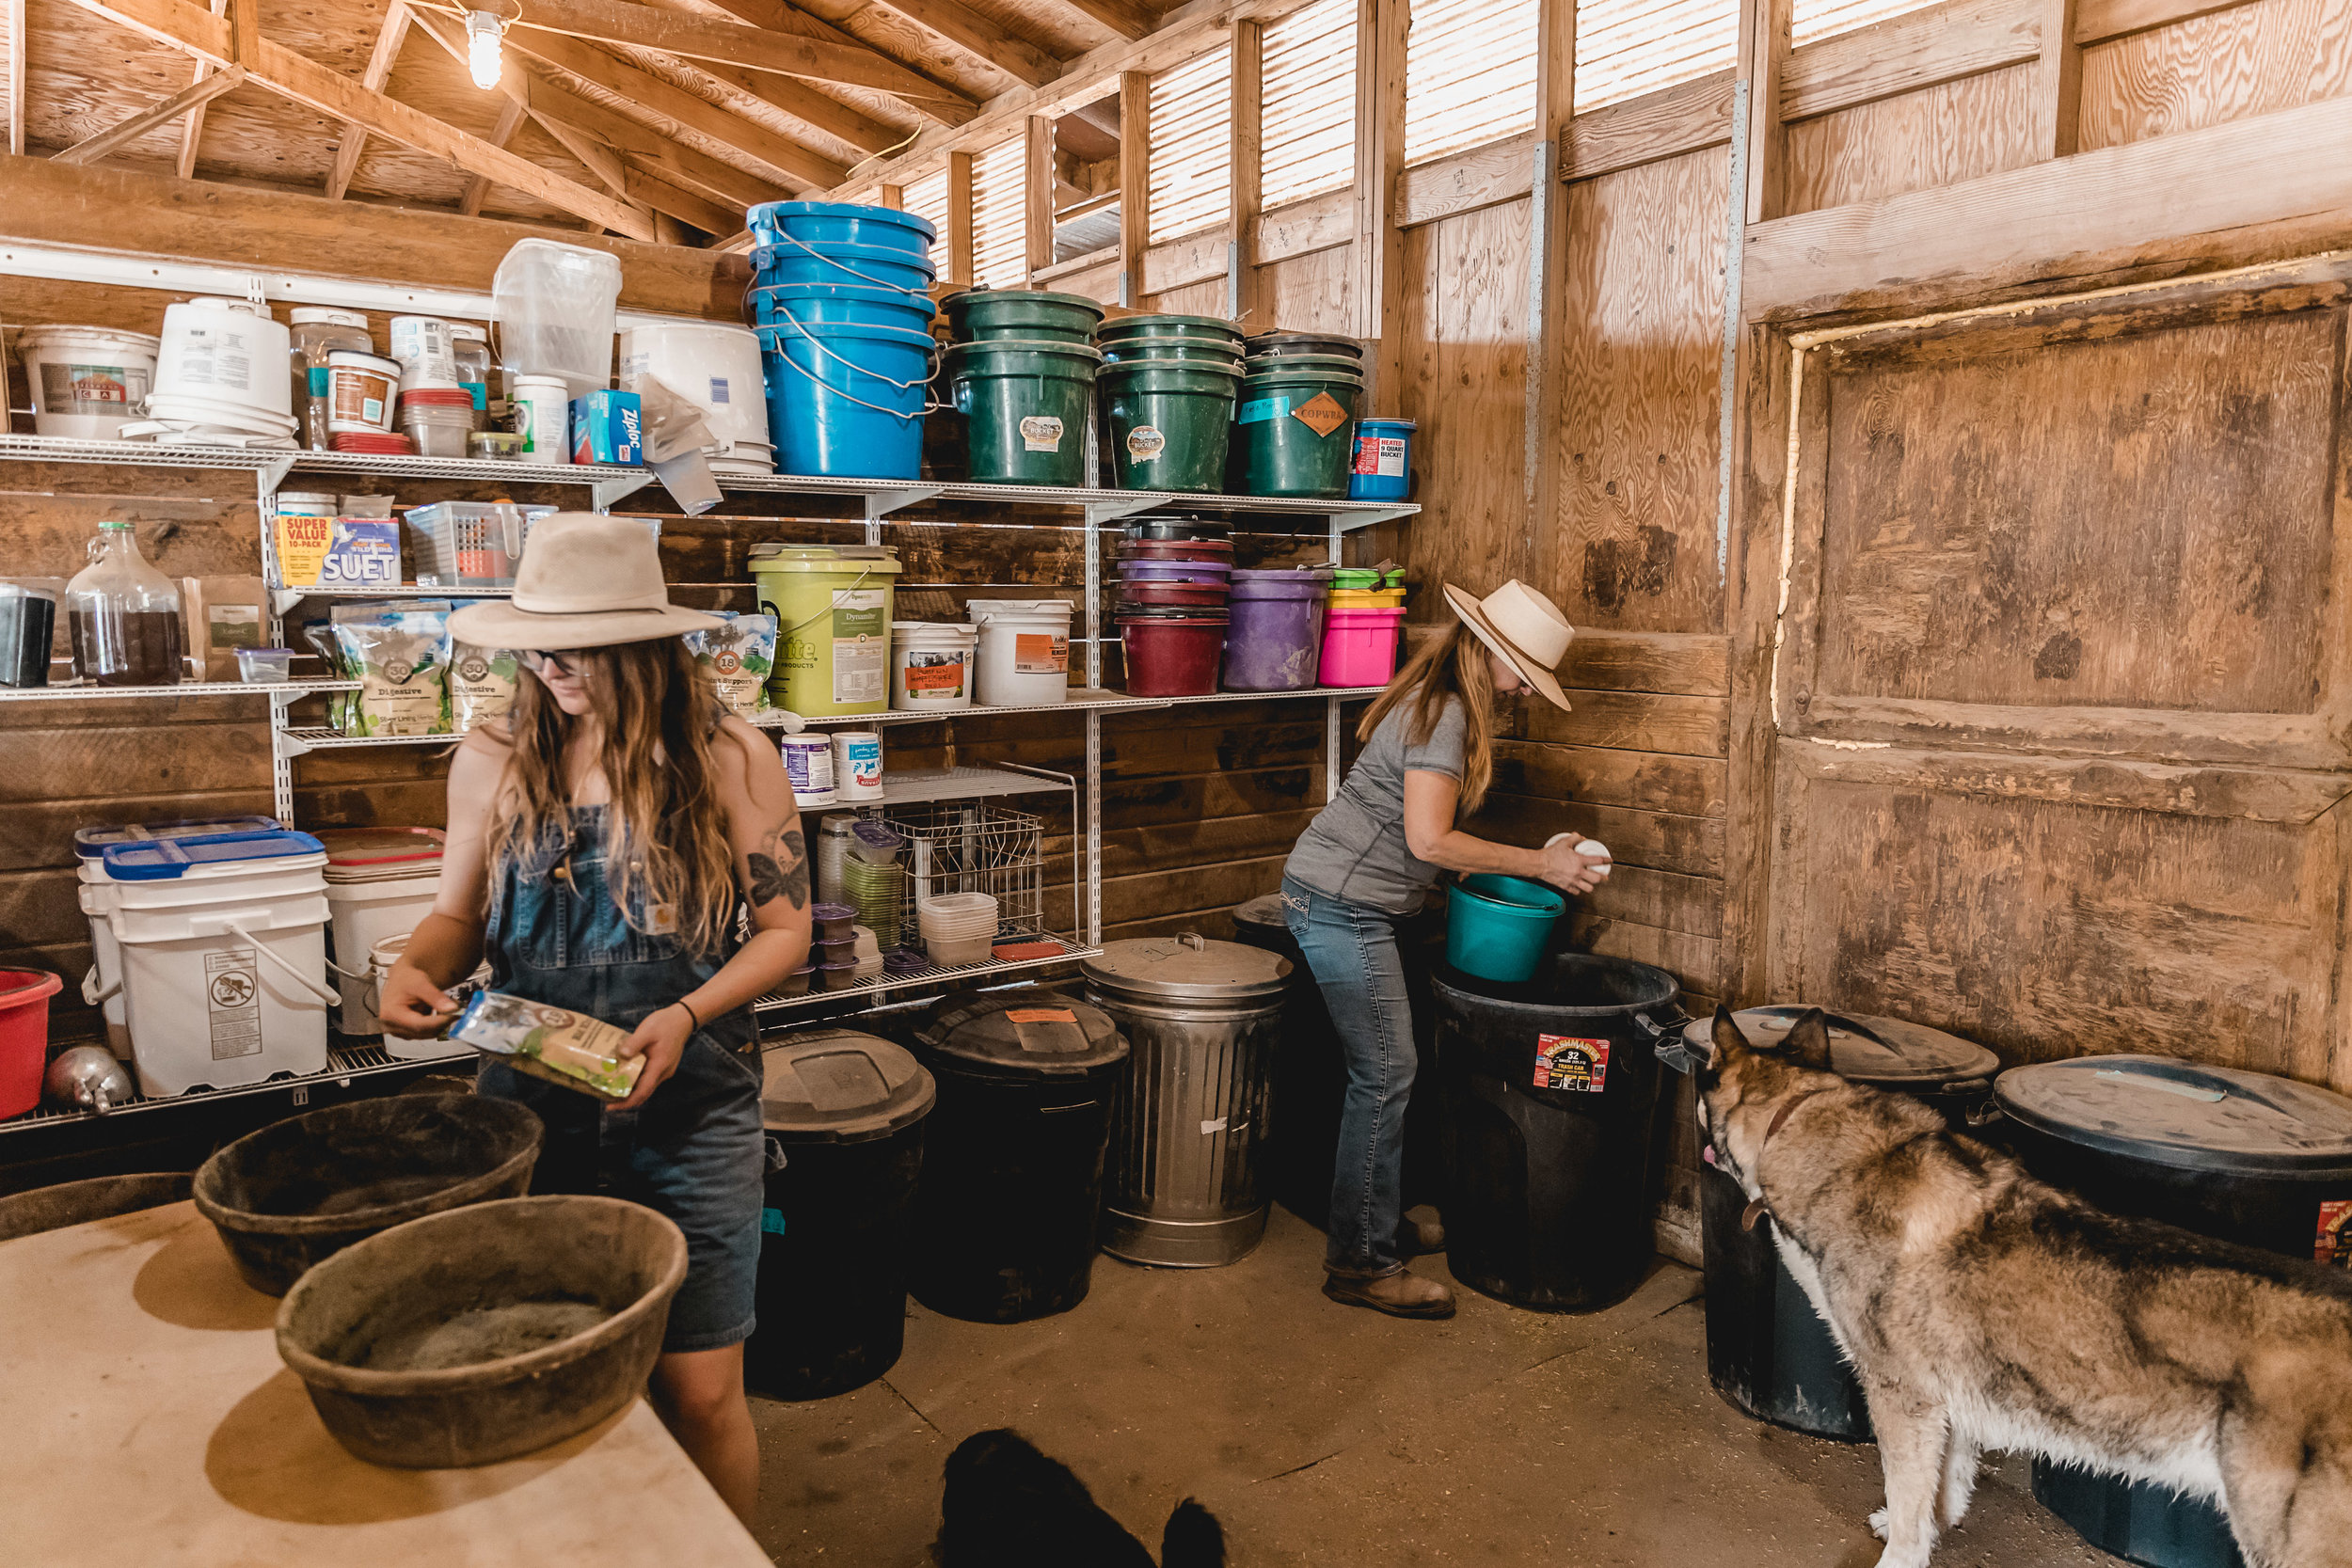 Melanie and Savannah in the feed room, ensuring each horse gets their proper nutrition and supplements.